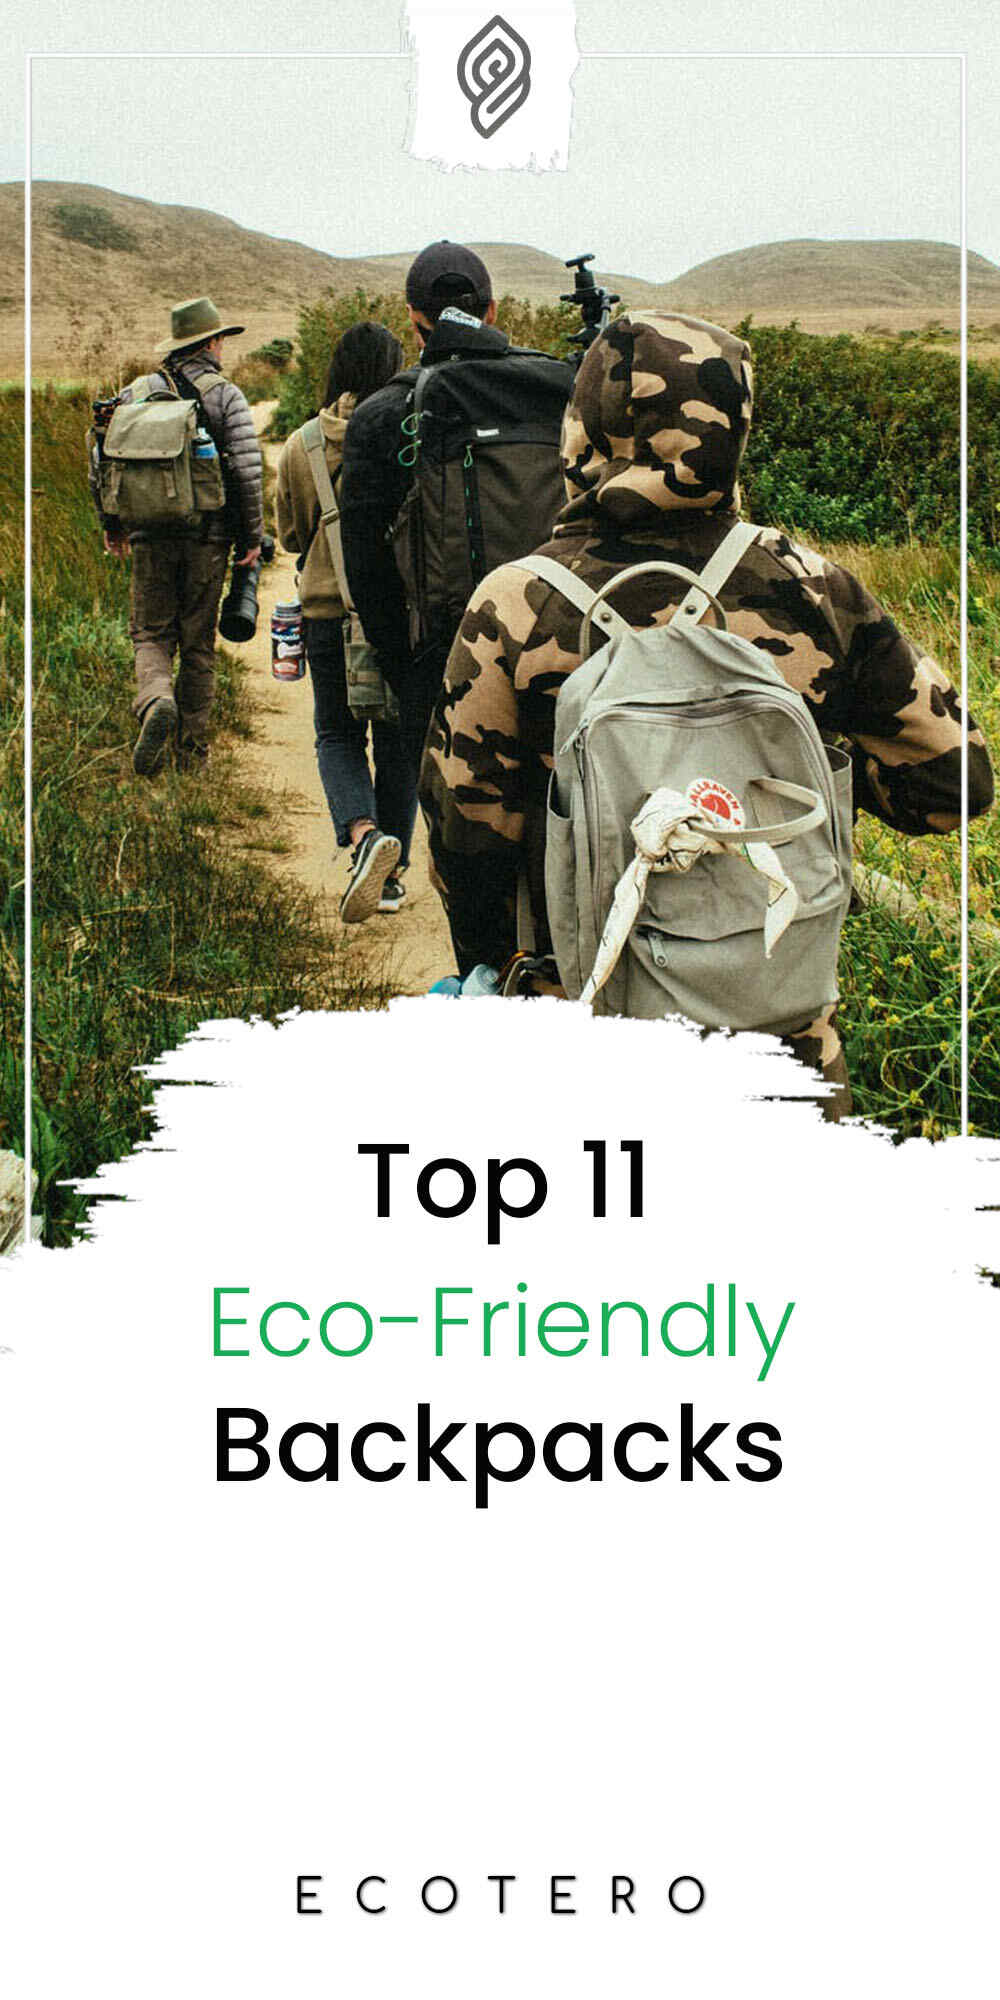 What to look for in eco-friendly and sustainable backpacks?